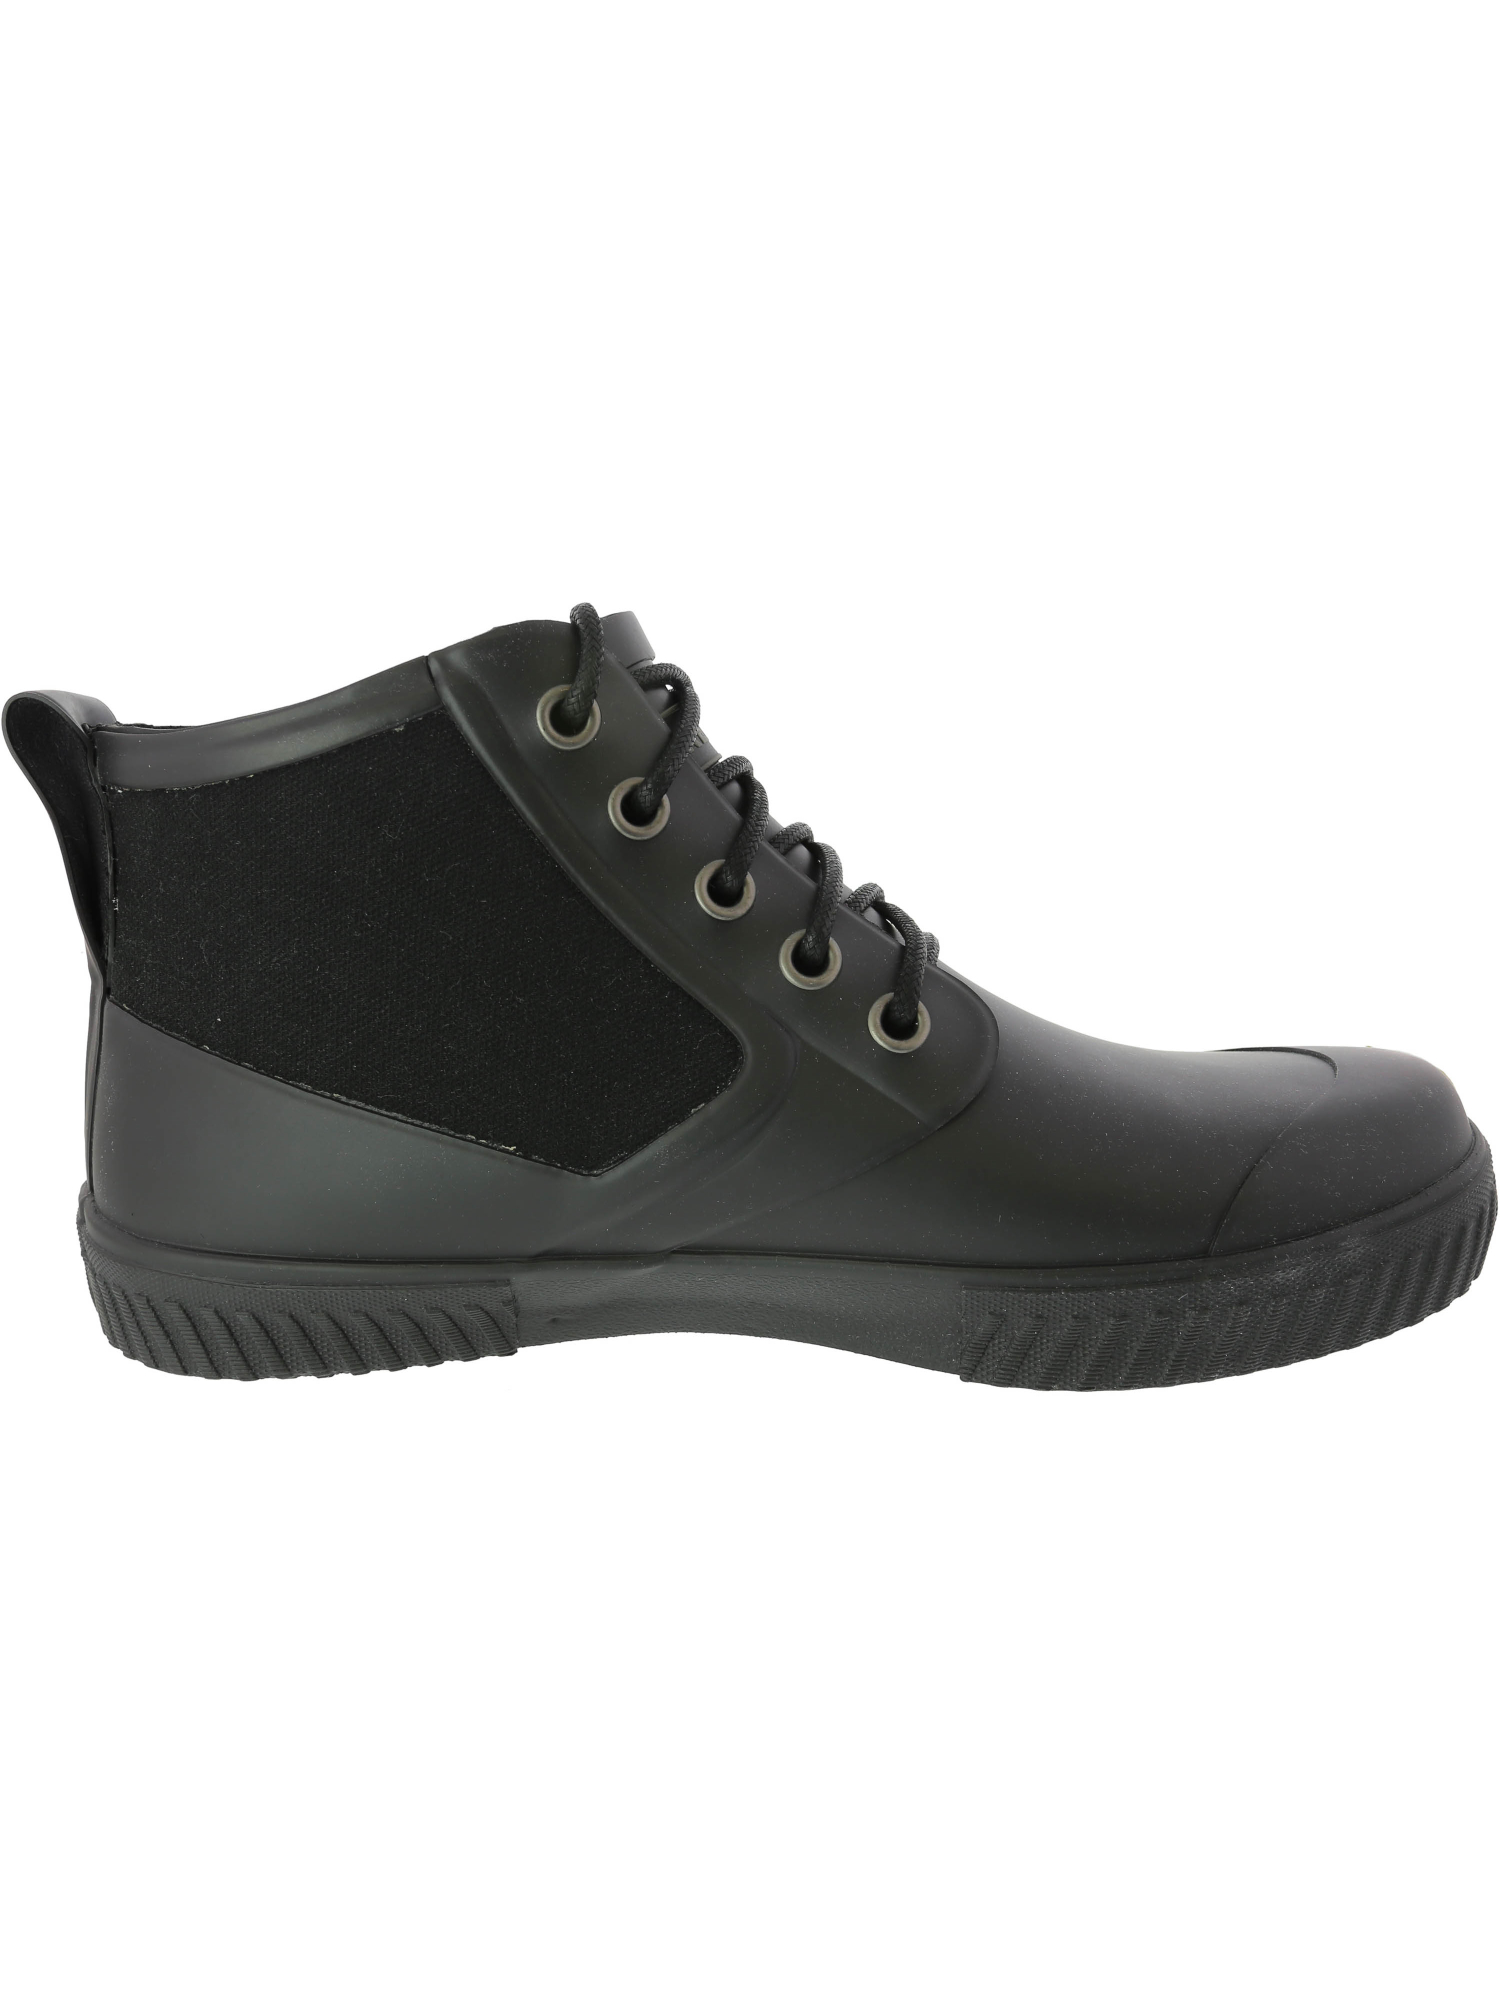 b0a9158d1 Tretorn Men's Gill Rain Boot Black/black 11 M US. About this product.  Picture 1 of 3; Picture 2 of 3 ...